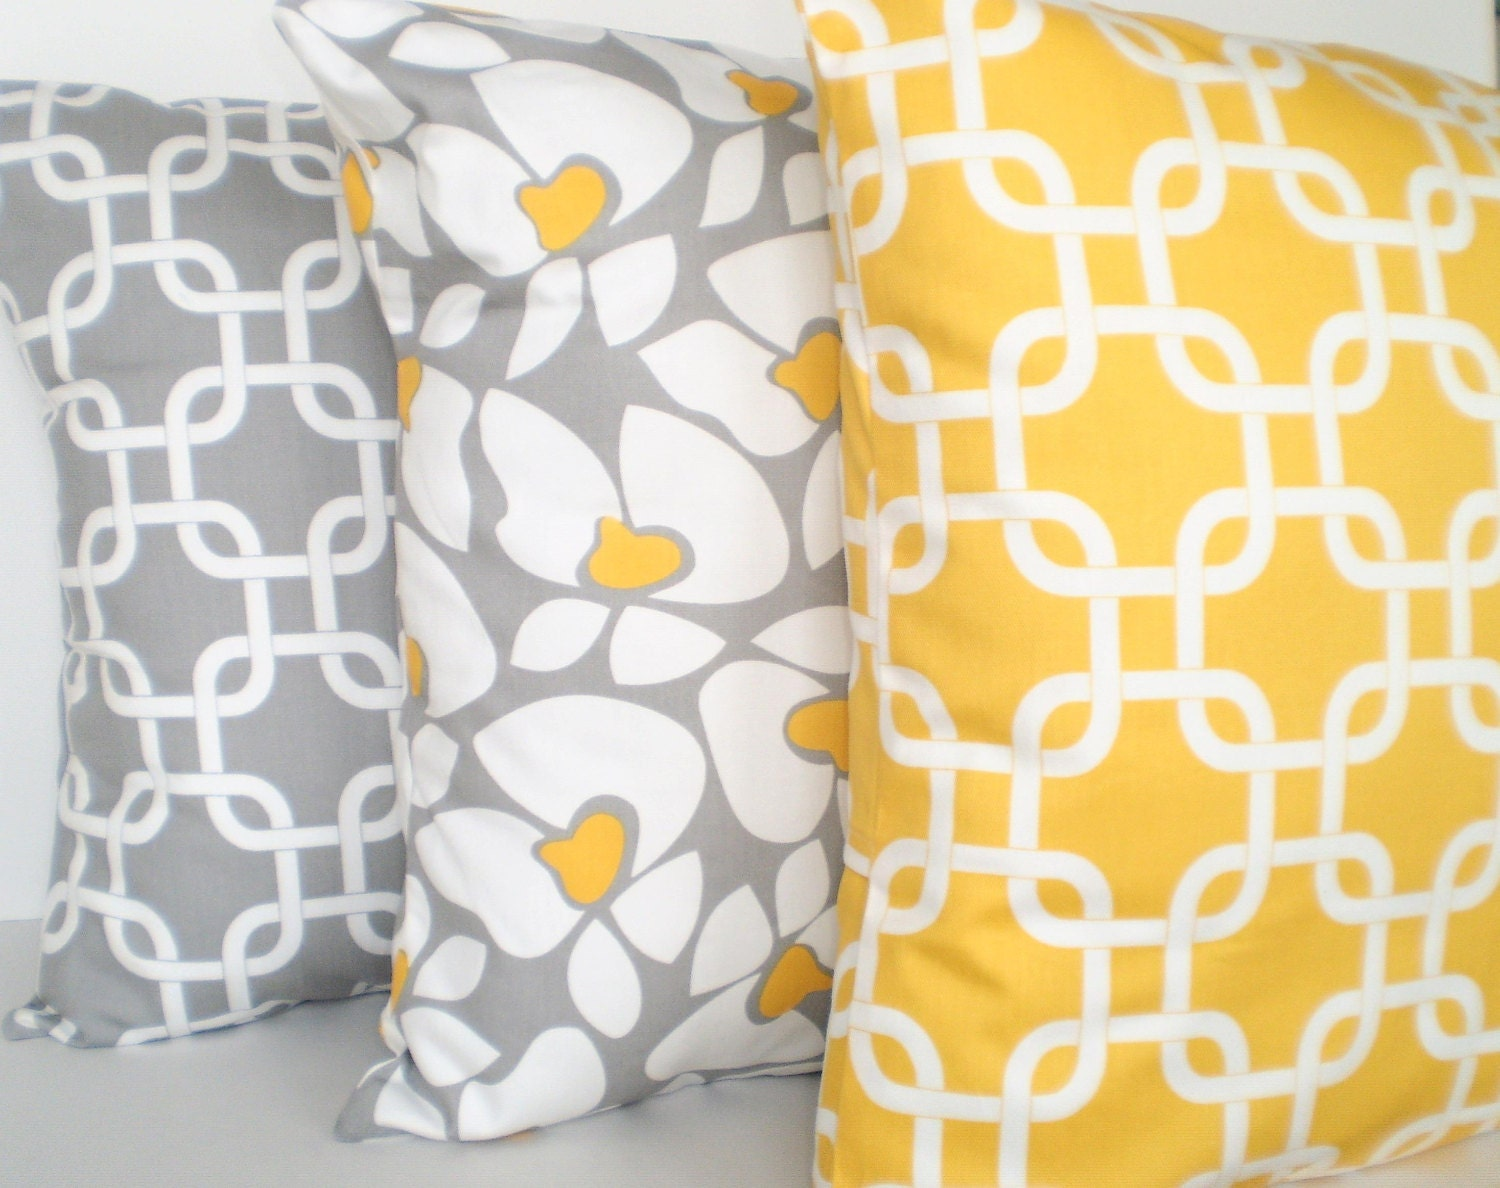 Throw Pillows Groupon : Yellow Gray Pillow Covers Decorative Throw Pillows Cushion